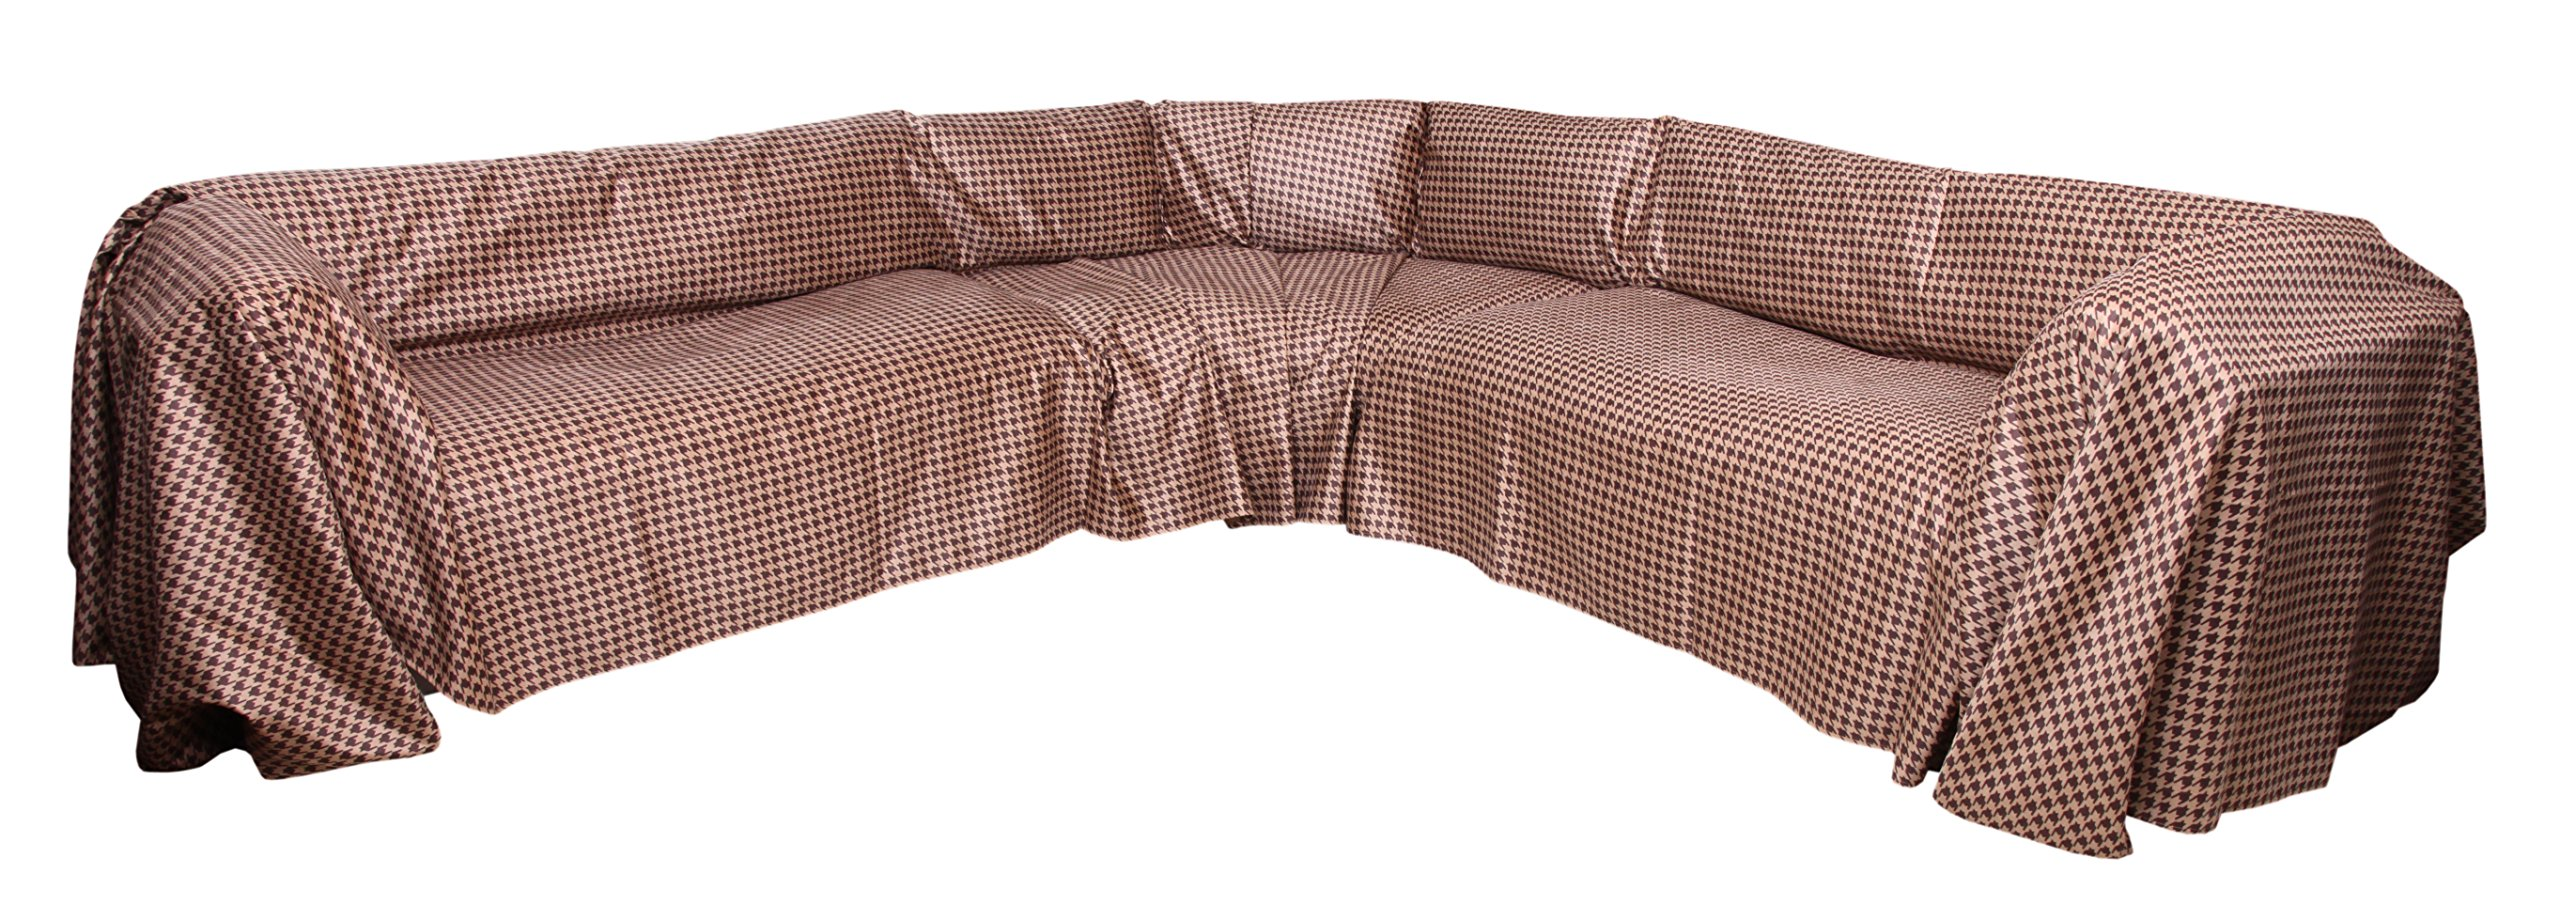 """Floppy Ears Design Simple Faux Suede Microfiber Sectional Couch Cover Protector (Large for Sectional 70"""" W x 250"""" L, Chocolate and Tan Houndstooth Print) by Floppy Ears Design"""